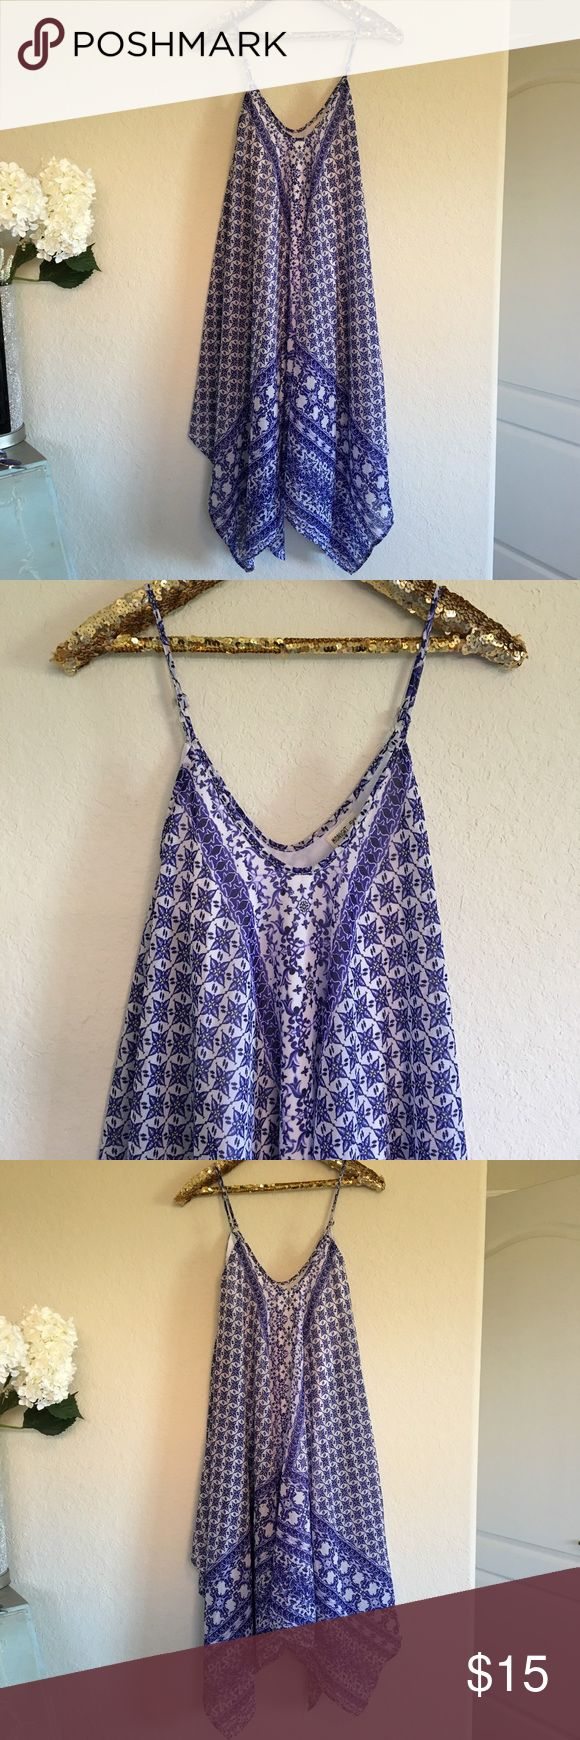 Midnight Sky Handkerchief Dress This beautiful blue and white handkerchief dress is in amazing condition! It's so pretty on and very stylish! It's fully lined and has adjustable straps.  🚭 From a smoke-free home ❌ No trades or off PoshMark sales 🛍 Bundles welcome and encouraged 👌🏻 Reasonable offers welcome ⚡️ Same/next day shipping 🌬 All items are steamed before shipping Midnight Sky Dresses